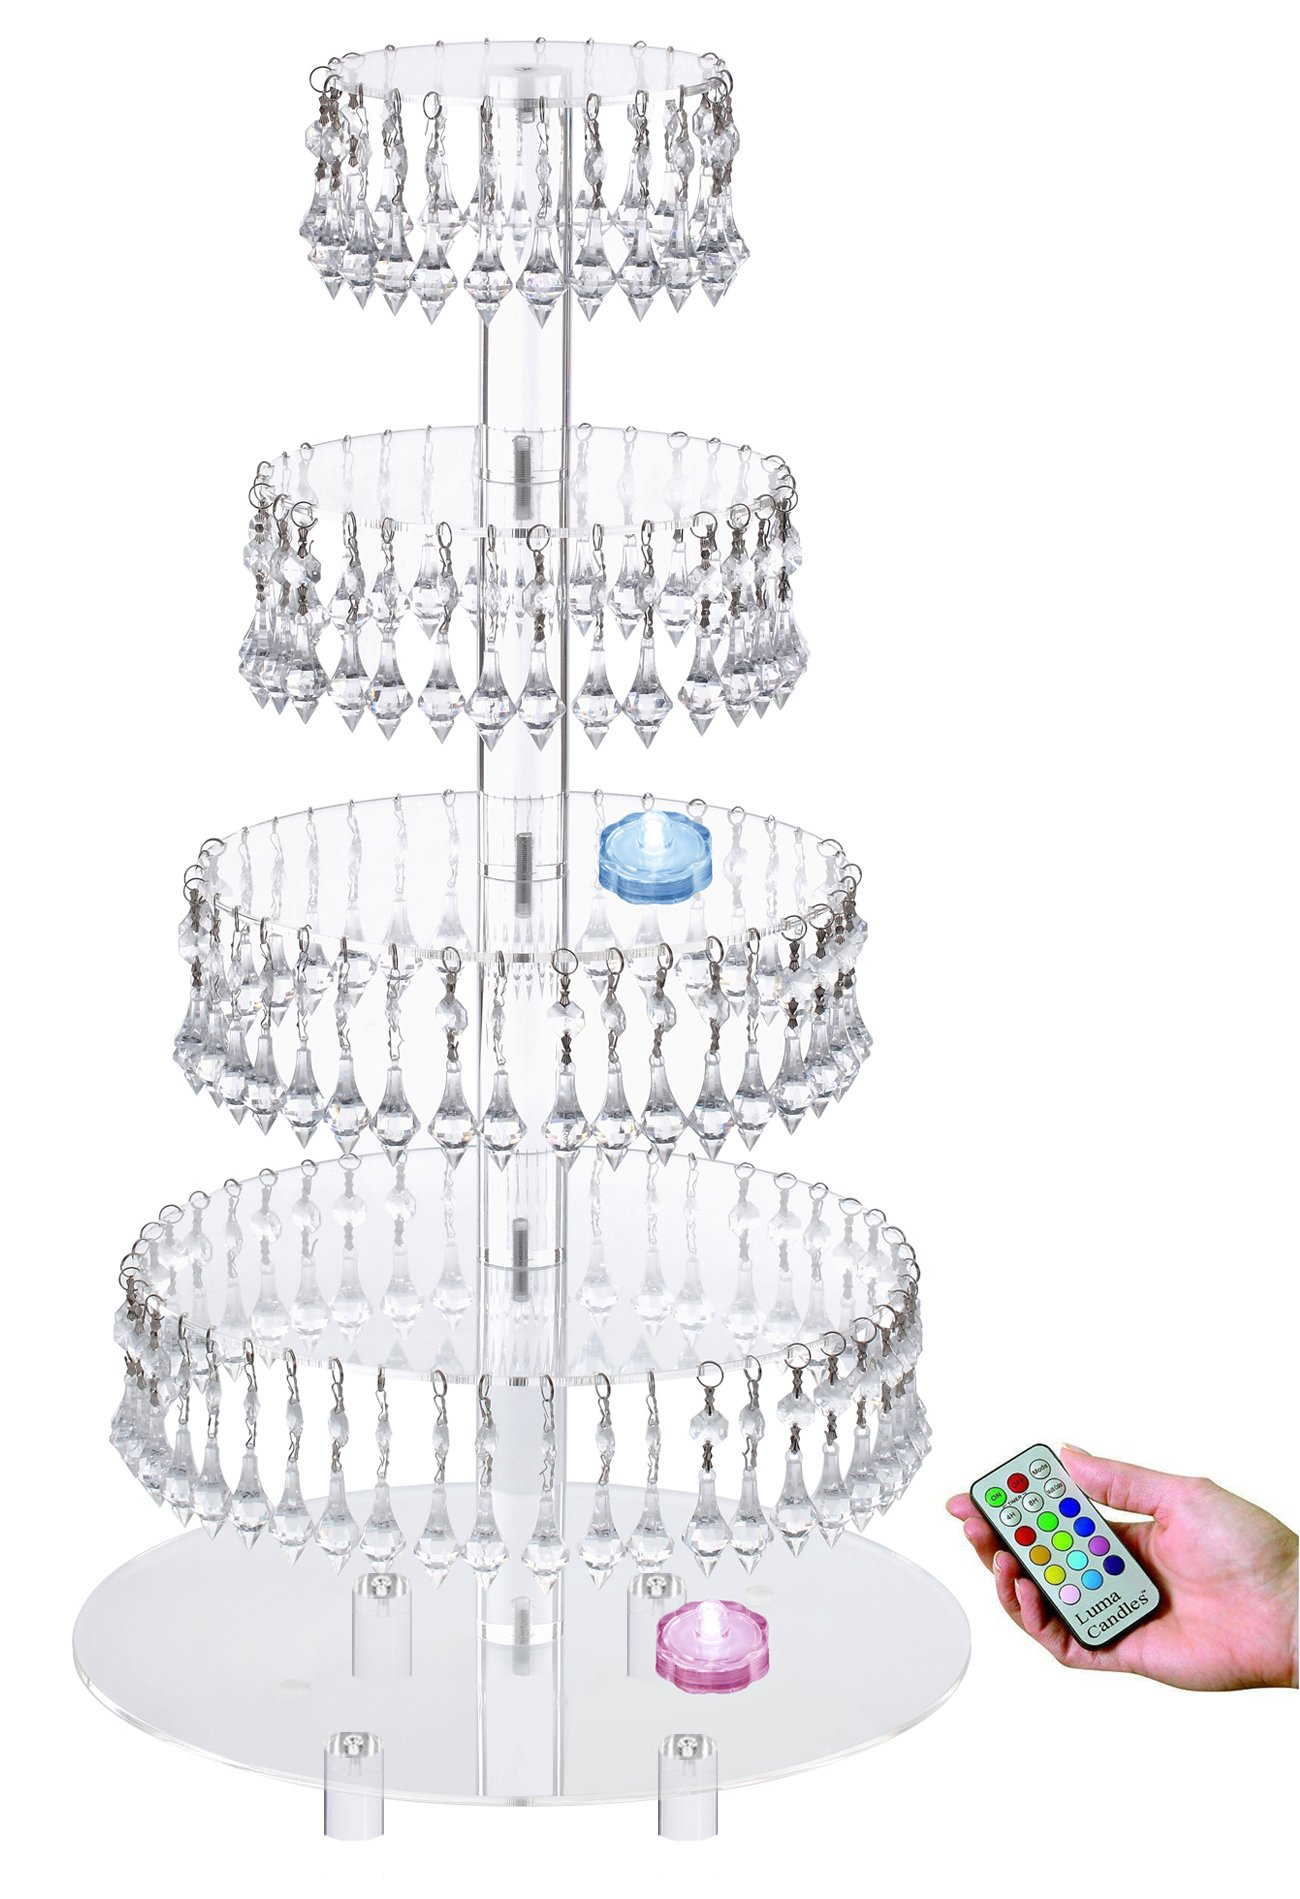 Pre-Installed Crystal Beads- 5 tier Acrylic Cupcake Tower Stand with Hanging Crystal Bead-wedding Party Cake Tower (5 Tier With Feet+LED Light)